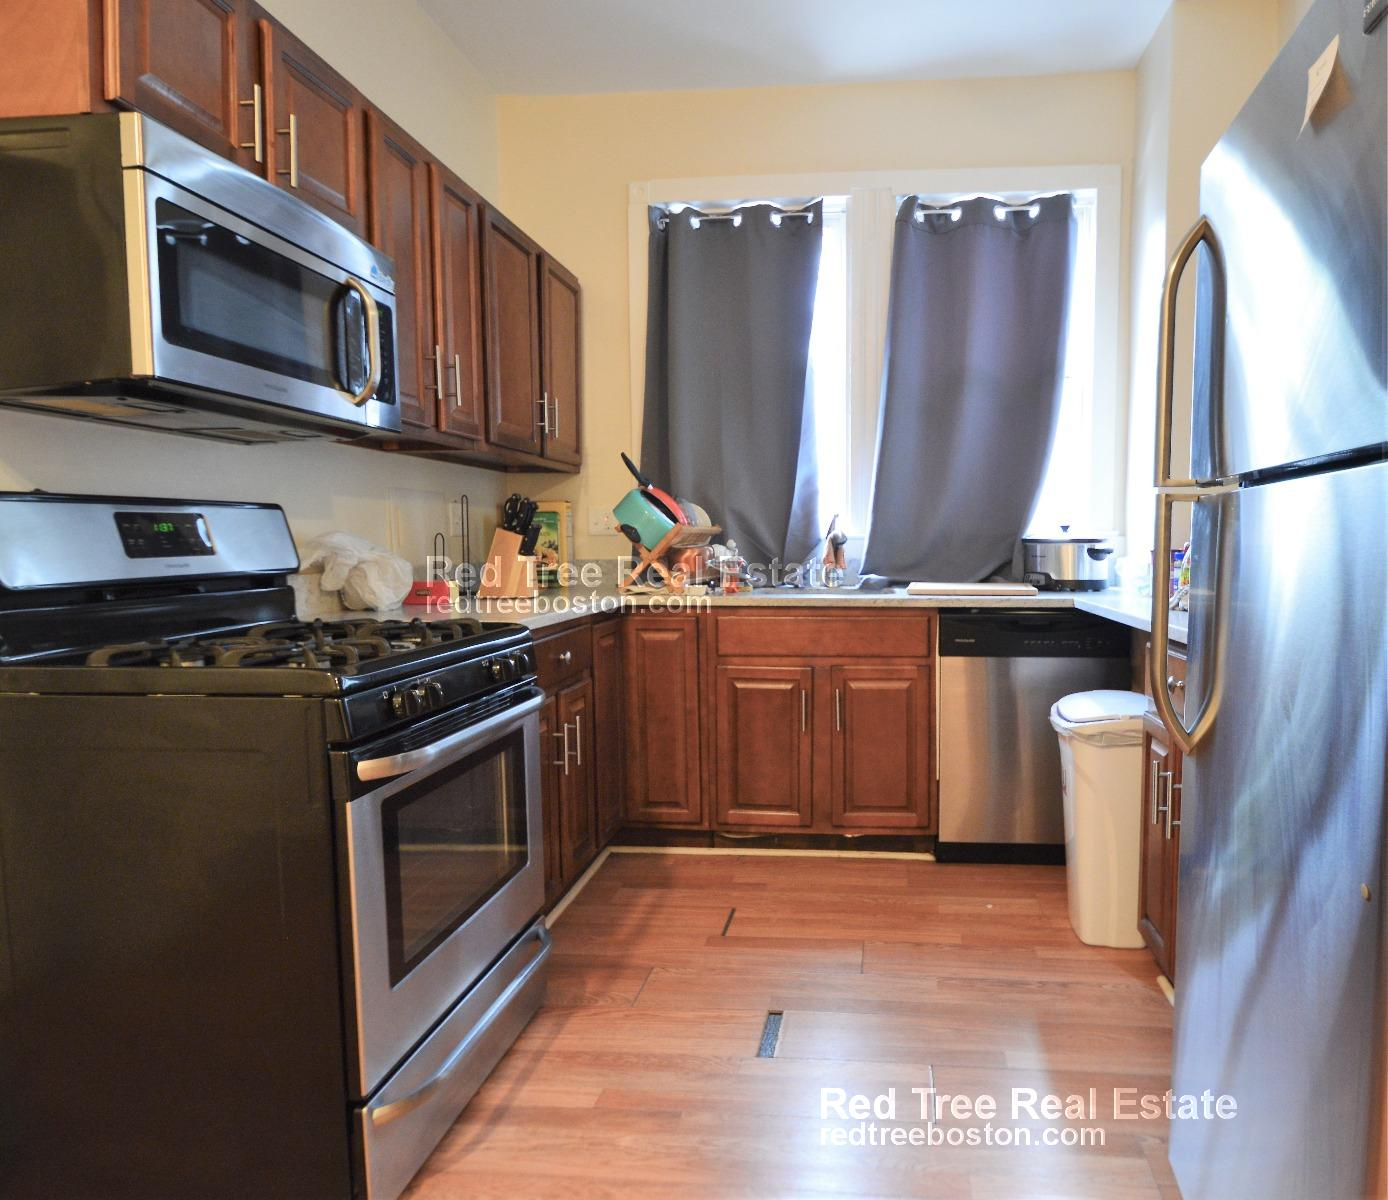 Pictures of  property for rent on Meridian St., Boston, MA 02128